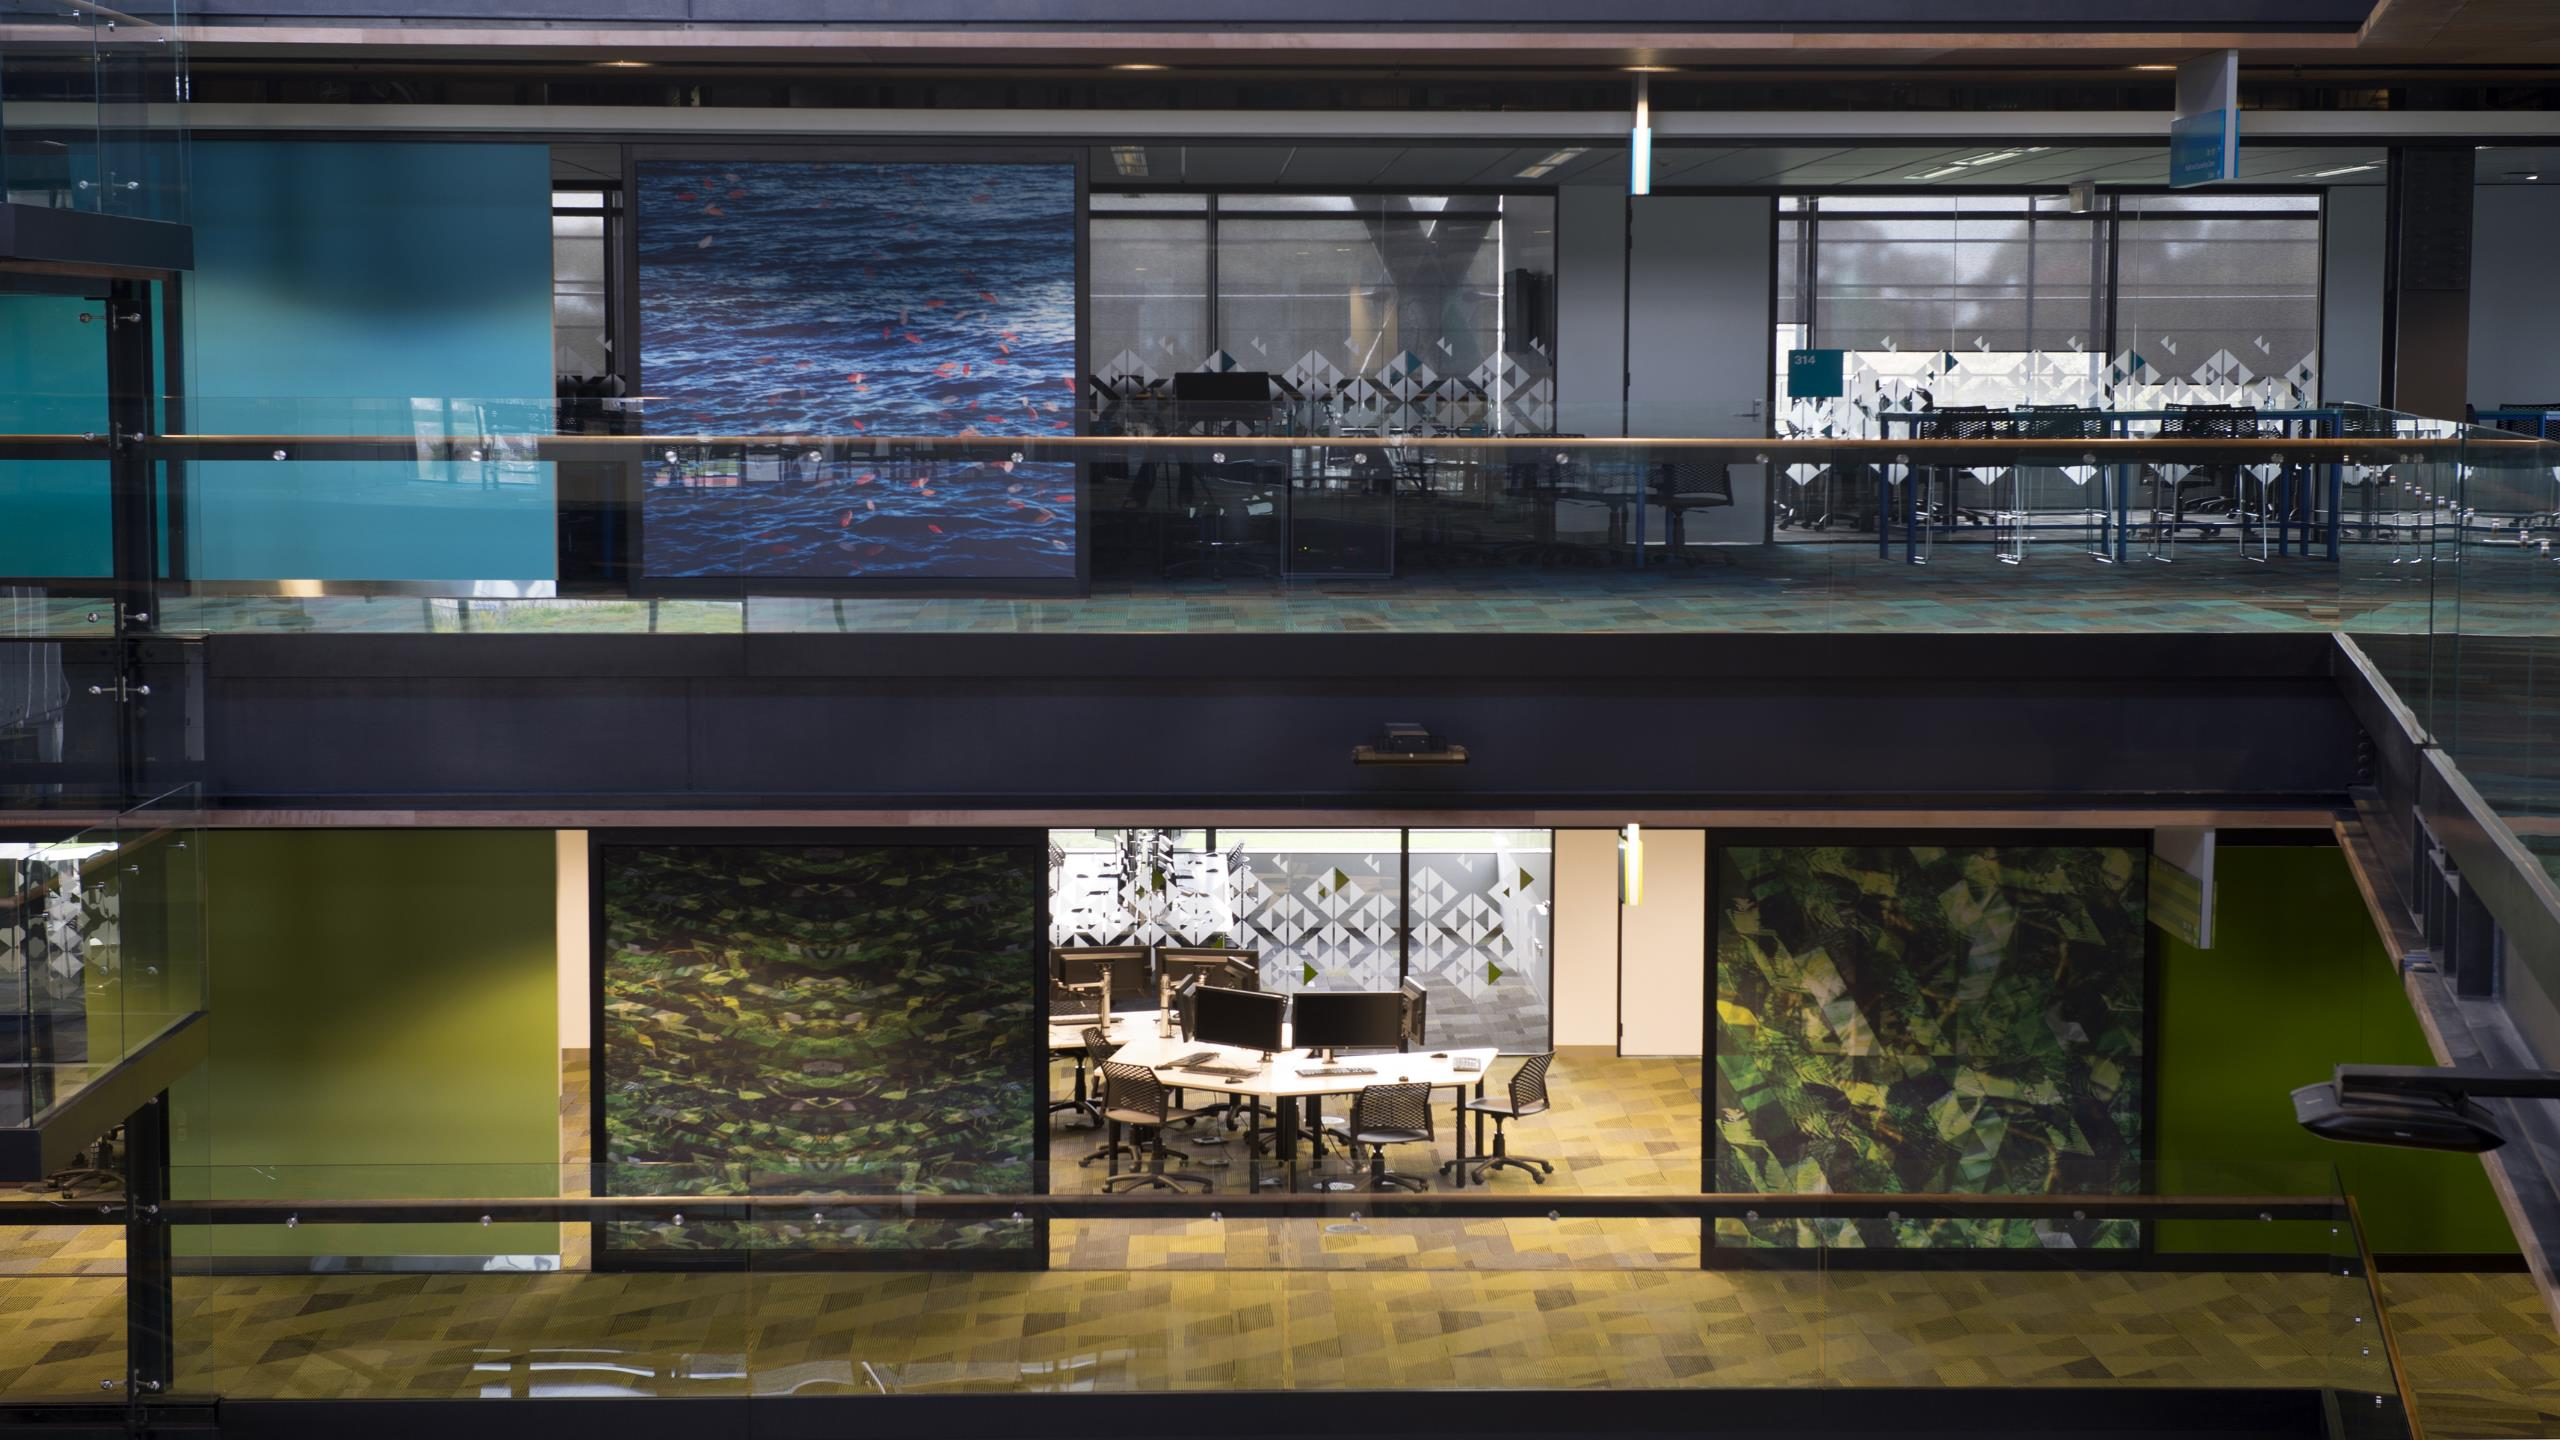 MIT Manukau showing installed Snaptex installed on large sliding doors in digitally printed fabric